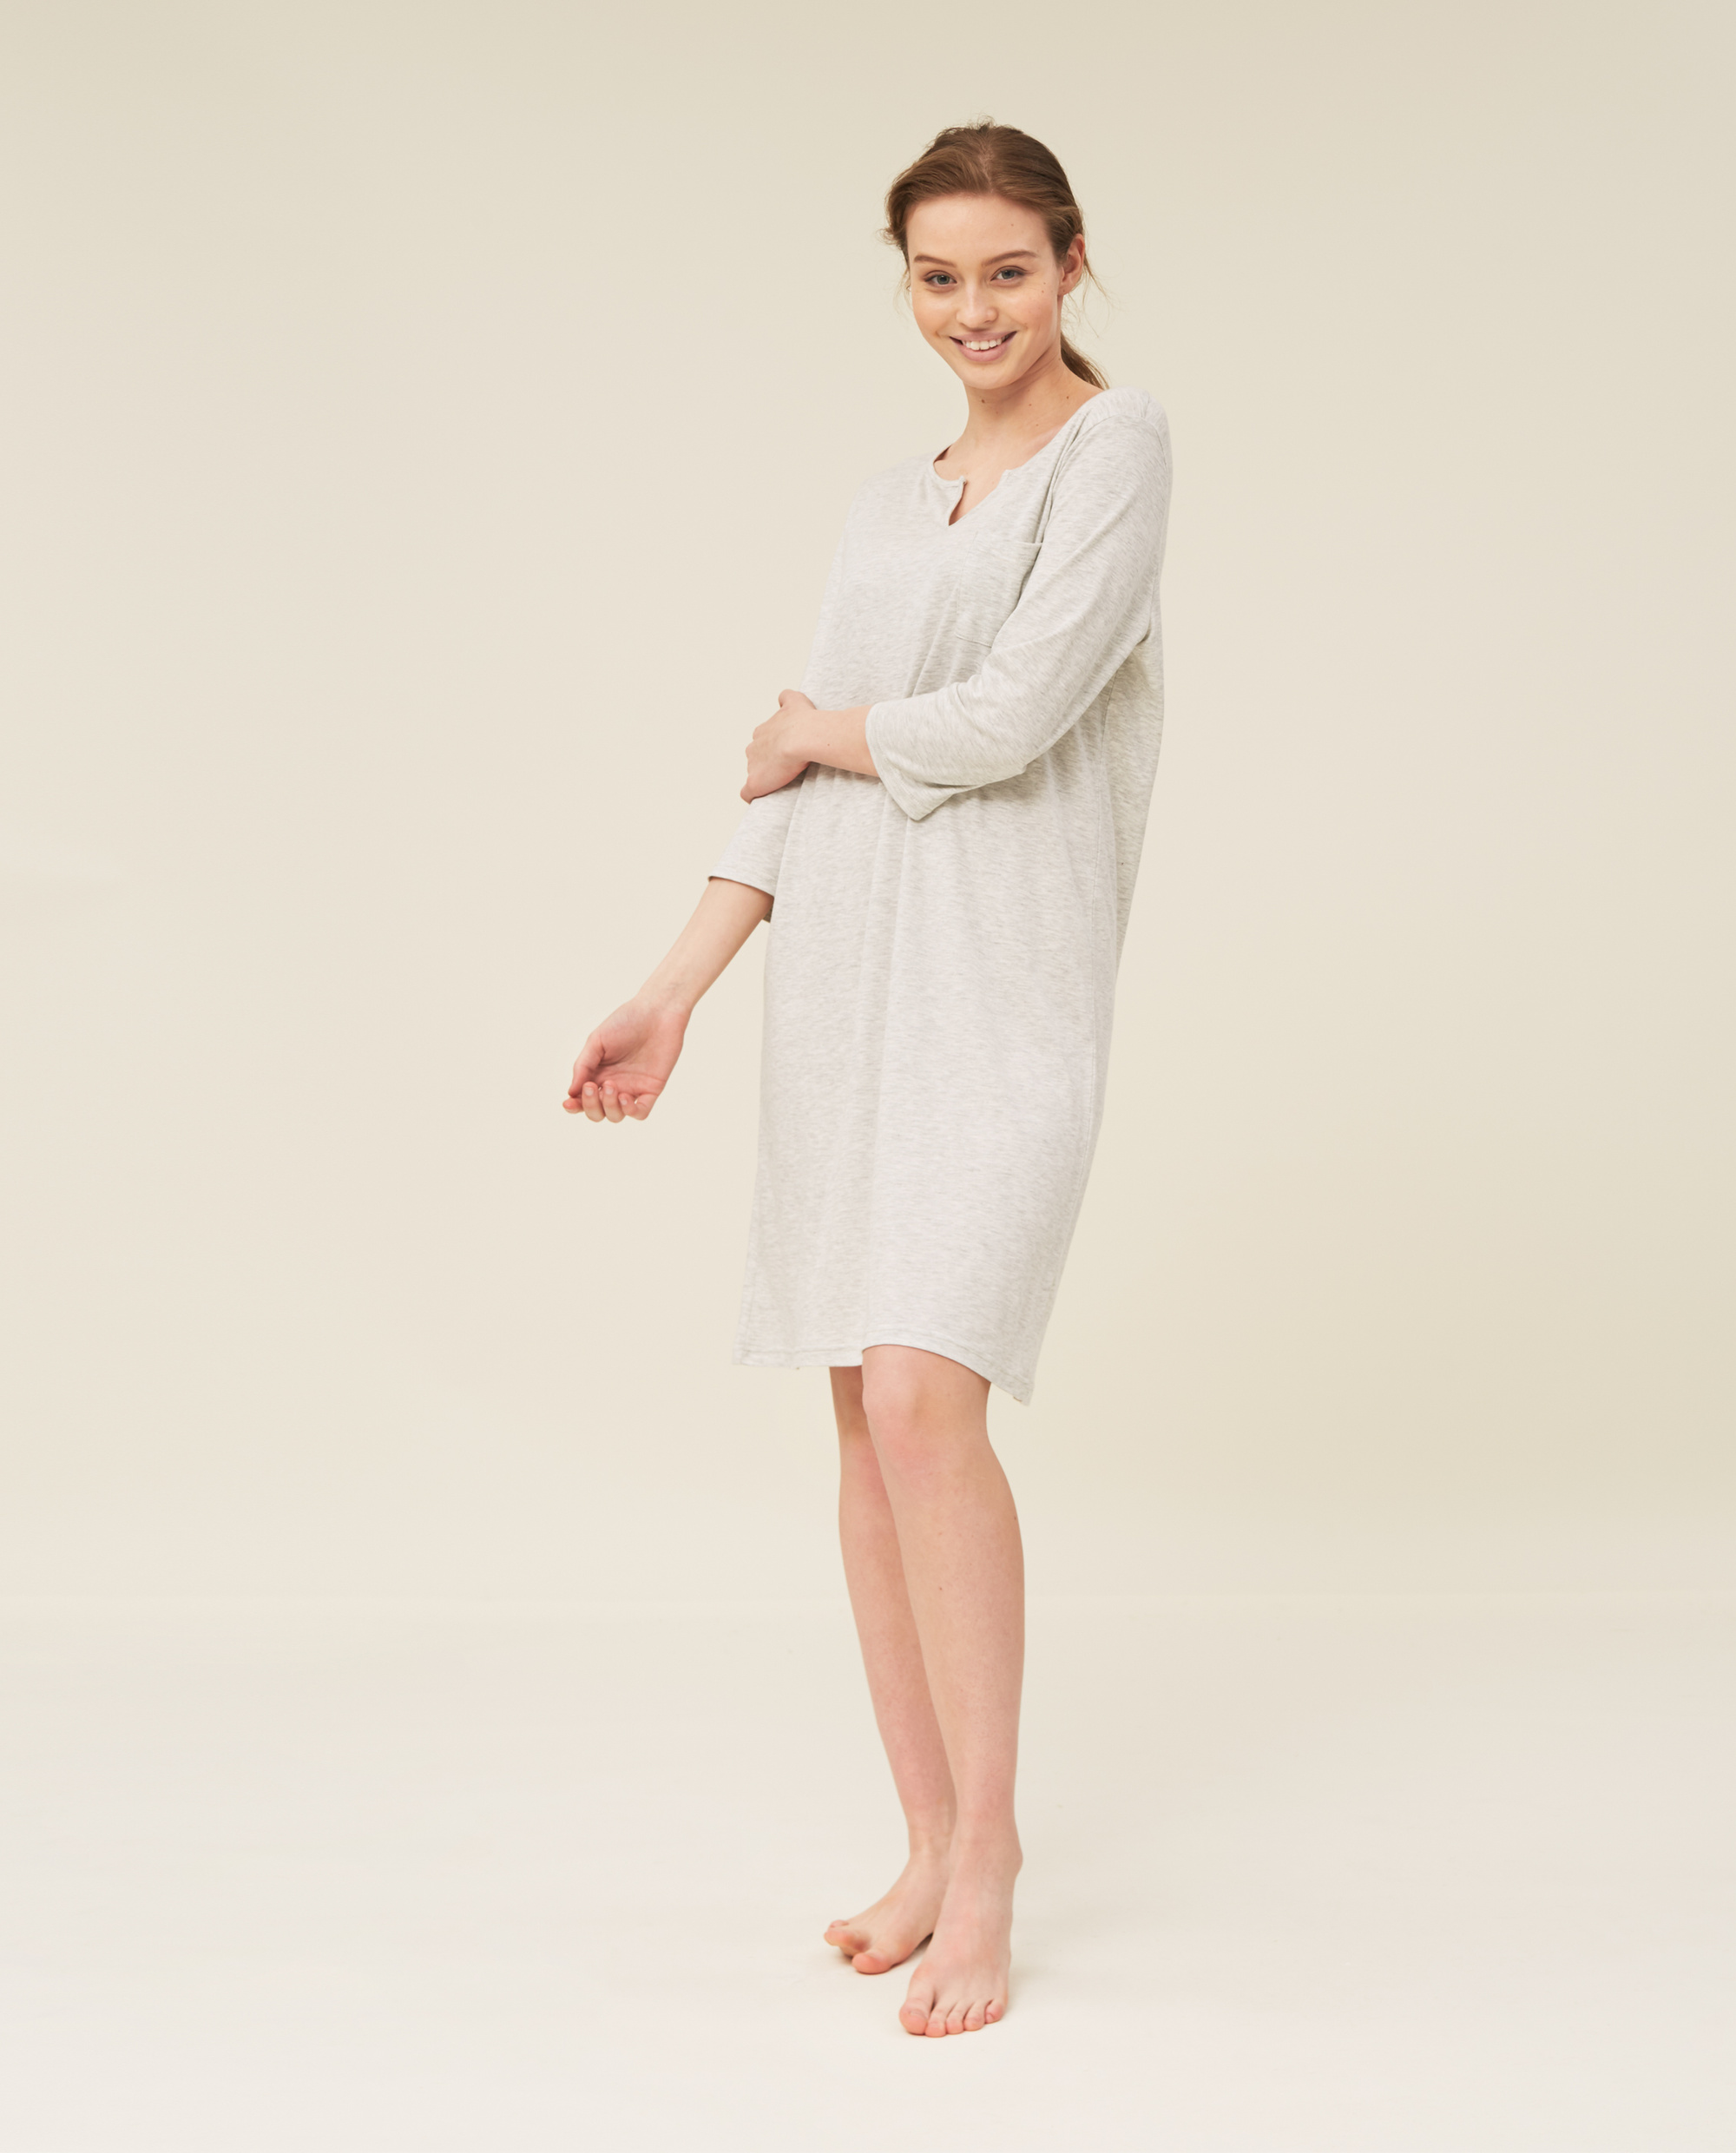 Women's Cotton/Micromodal Nightgown